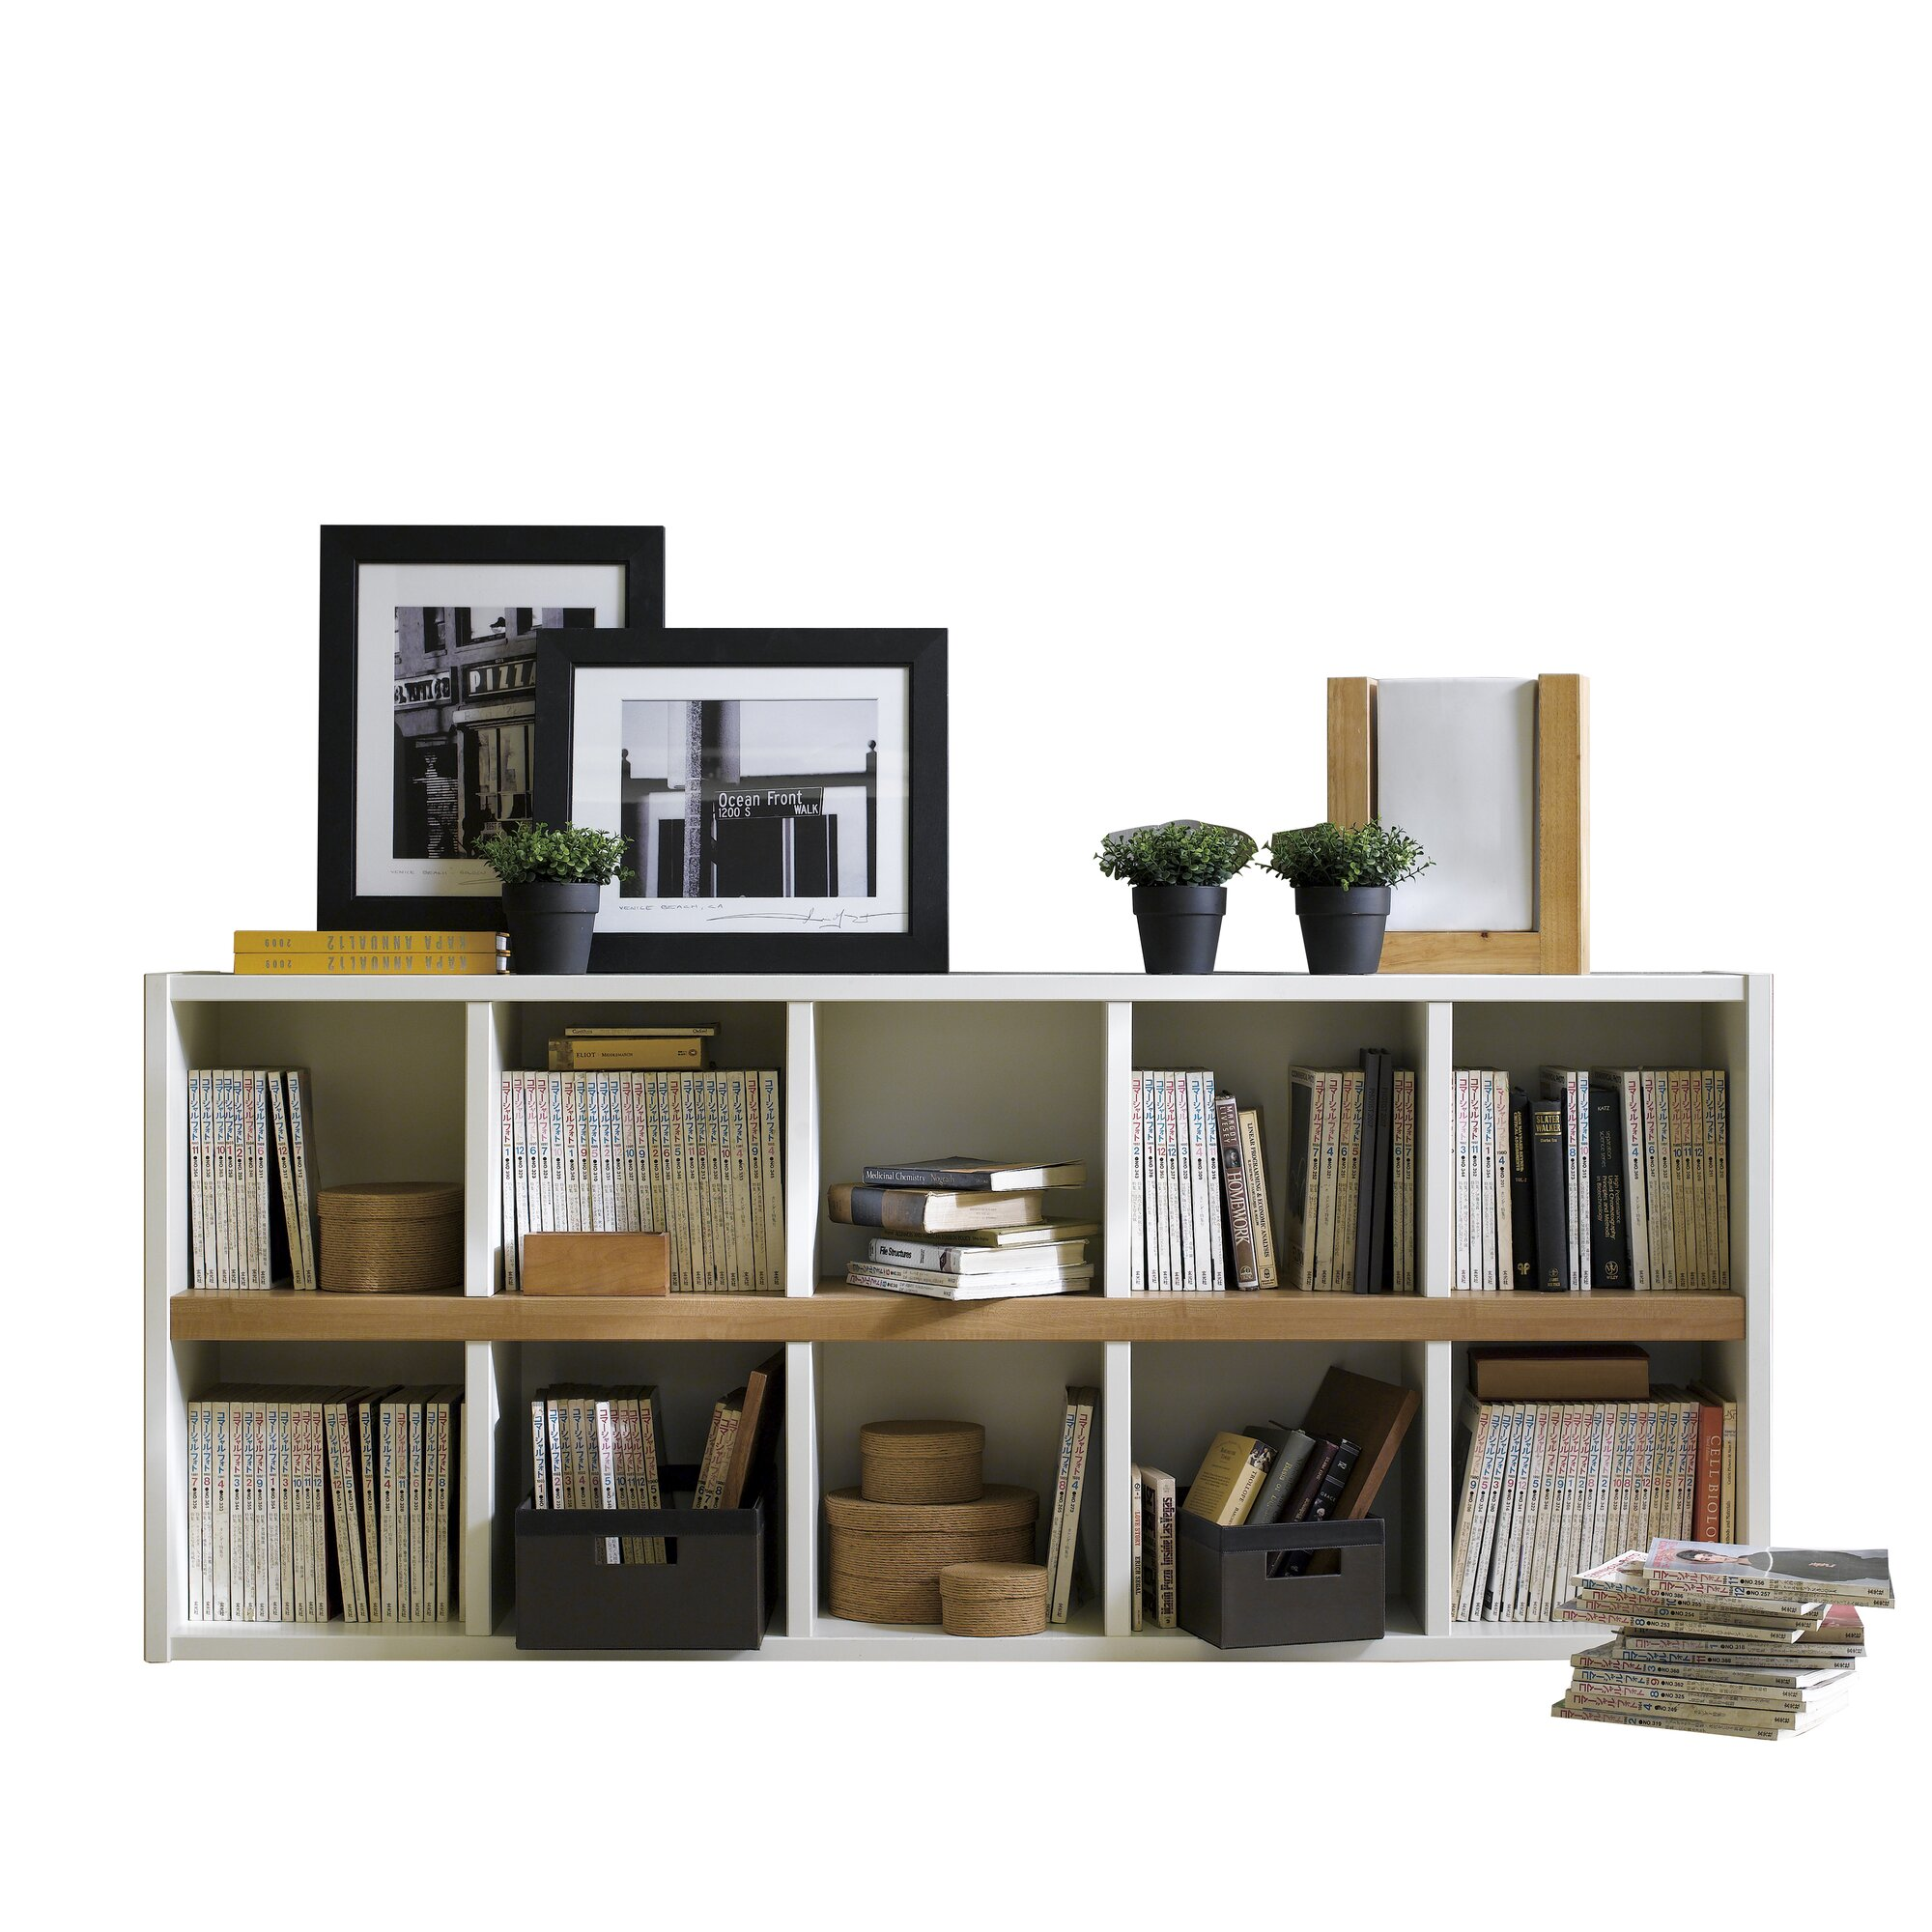 ClosetMaid Decorative Storage 30 Cube Unit Bookcase CLOP1225 additionally OXO Good Grips Large Cube Covered Ice Cube Tray OXO1938 furthermore 845 Uo Smart Beam Palm Sized Wireless Laser Projector additionally Mylex 36 Cube Unit Bookcase MEX1070 further 30 H X 44 W X 13 6 D Decorative 6 Cube Storage Cabi  10900 CLOP1226. on office cube air conditioners